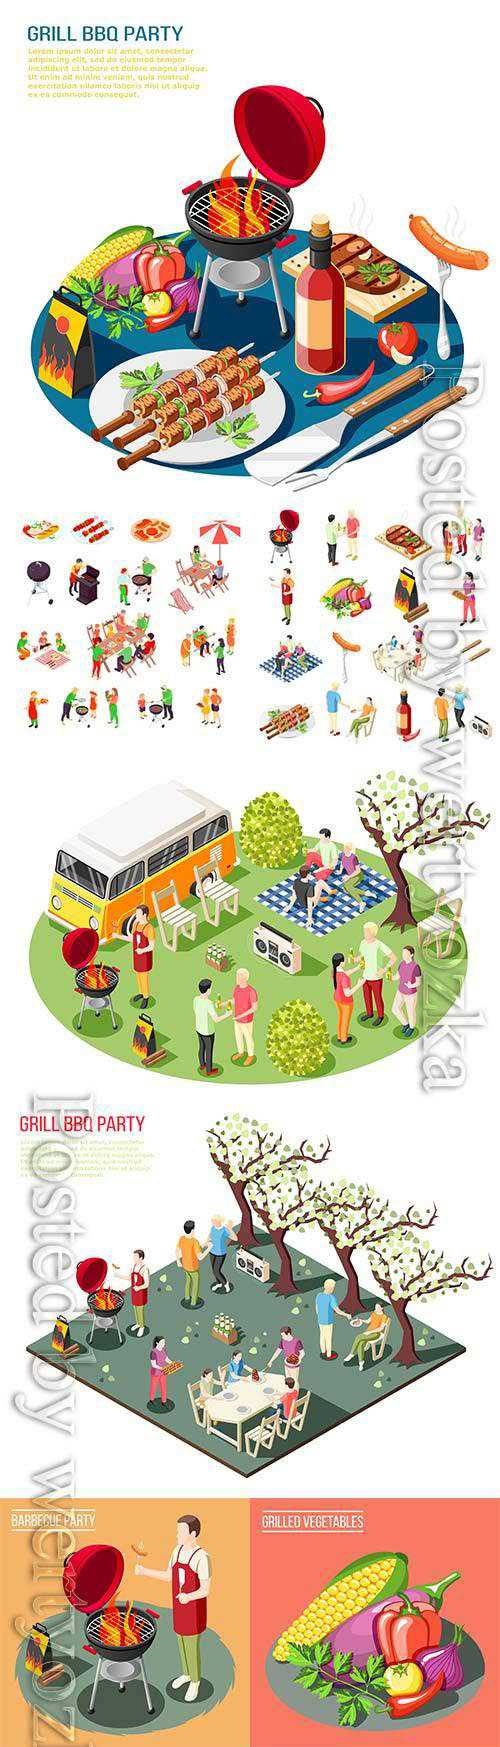 Barbecue grill party isometric icons collection with isolated icons grill food outdoors grill and people